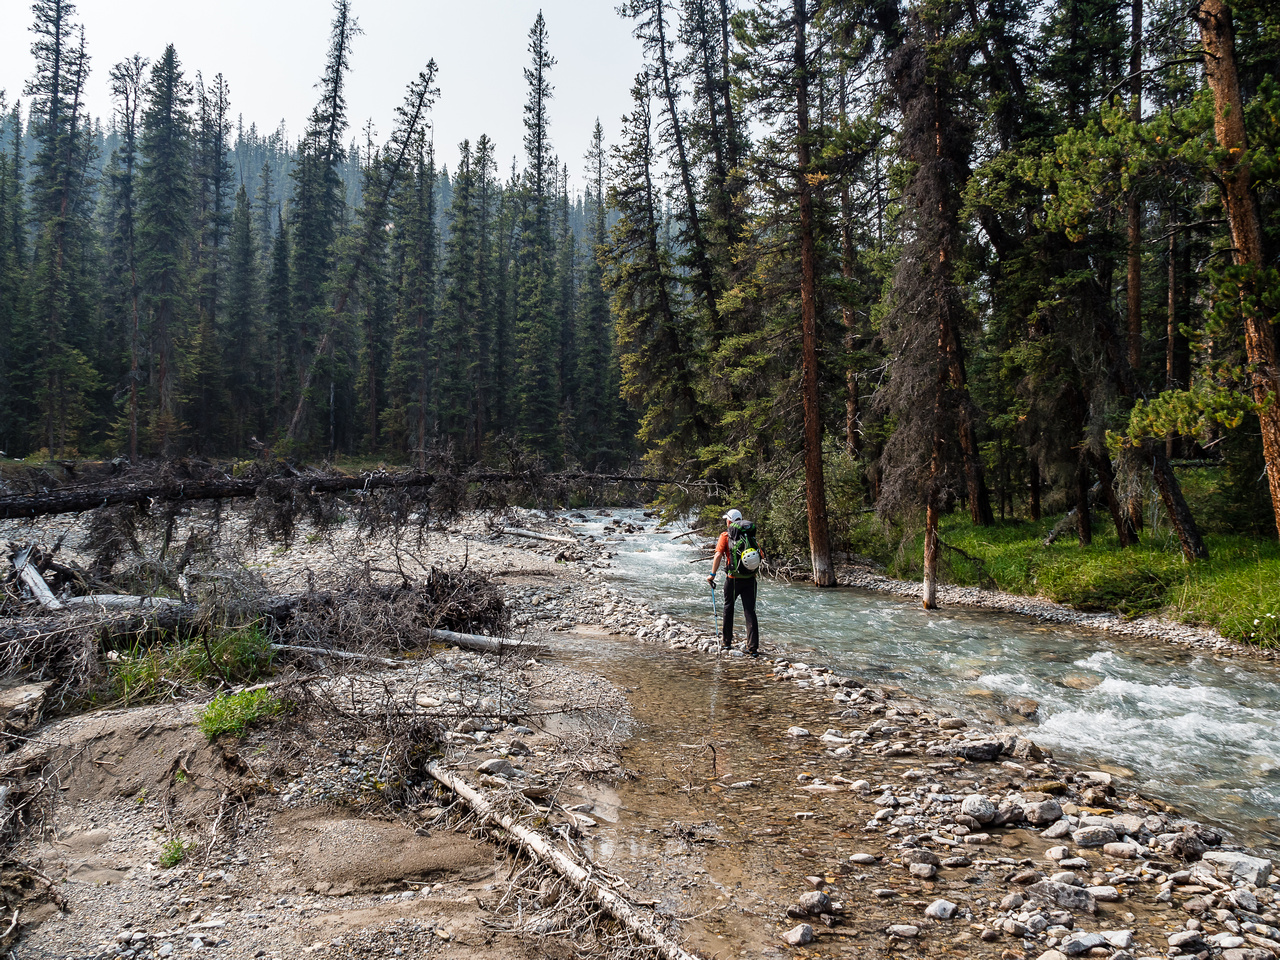 True Banff wilderness as we start up the outflow stream into the McConnell Valley.